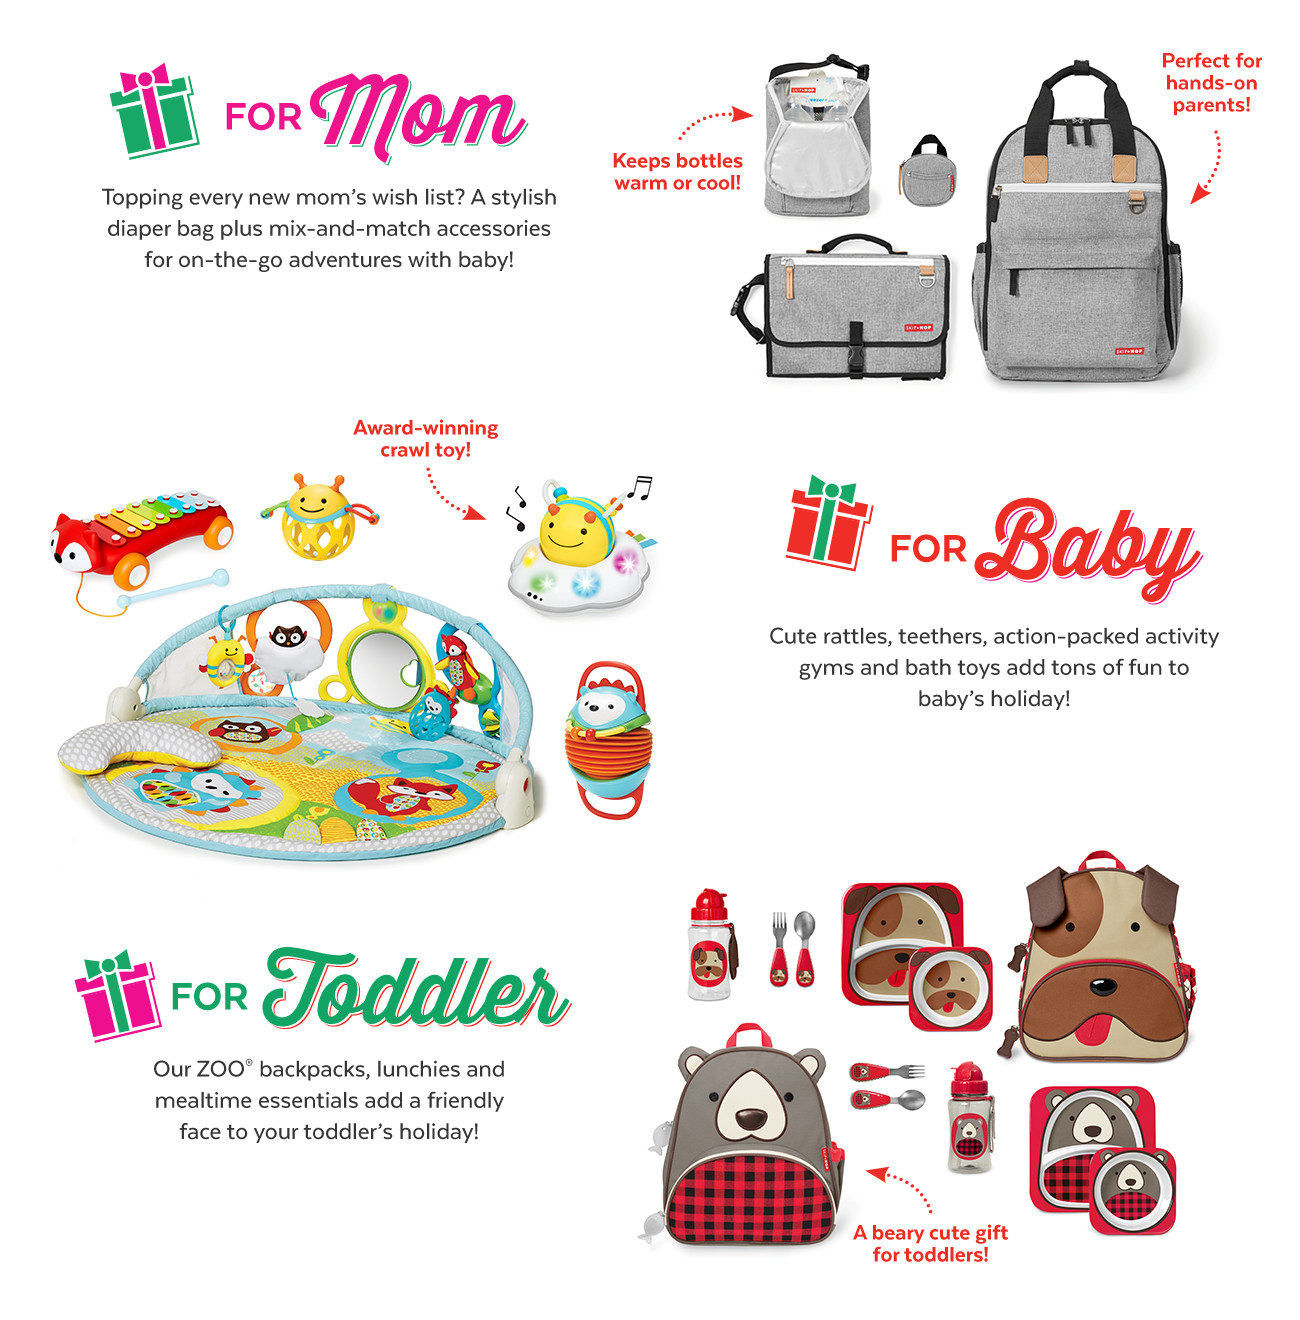 Better Baby Items Products Gear By Skip Hop Tb Duet Chain Convertible For Mom Toddler Tapping Every New Moms Wish List